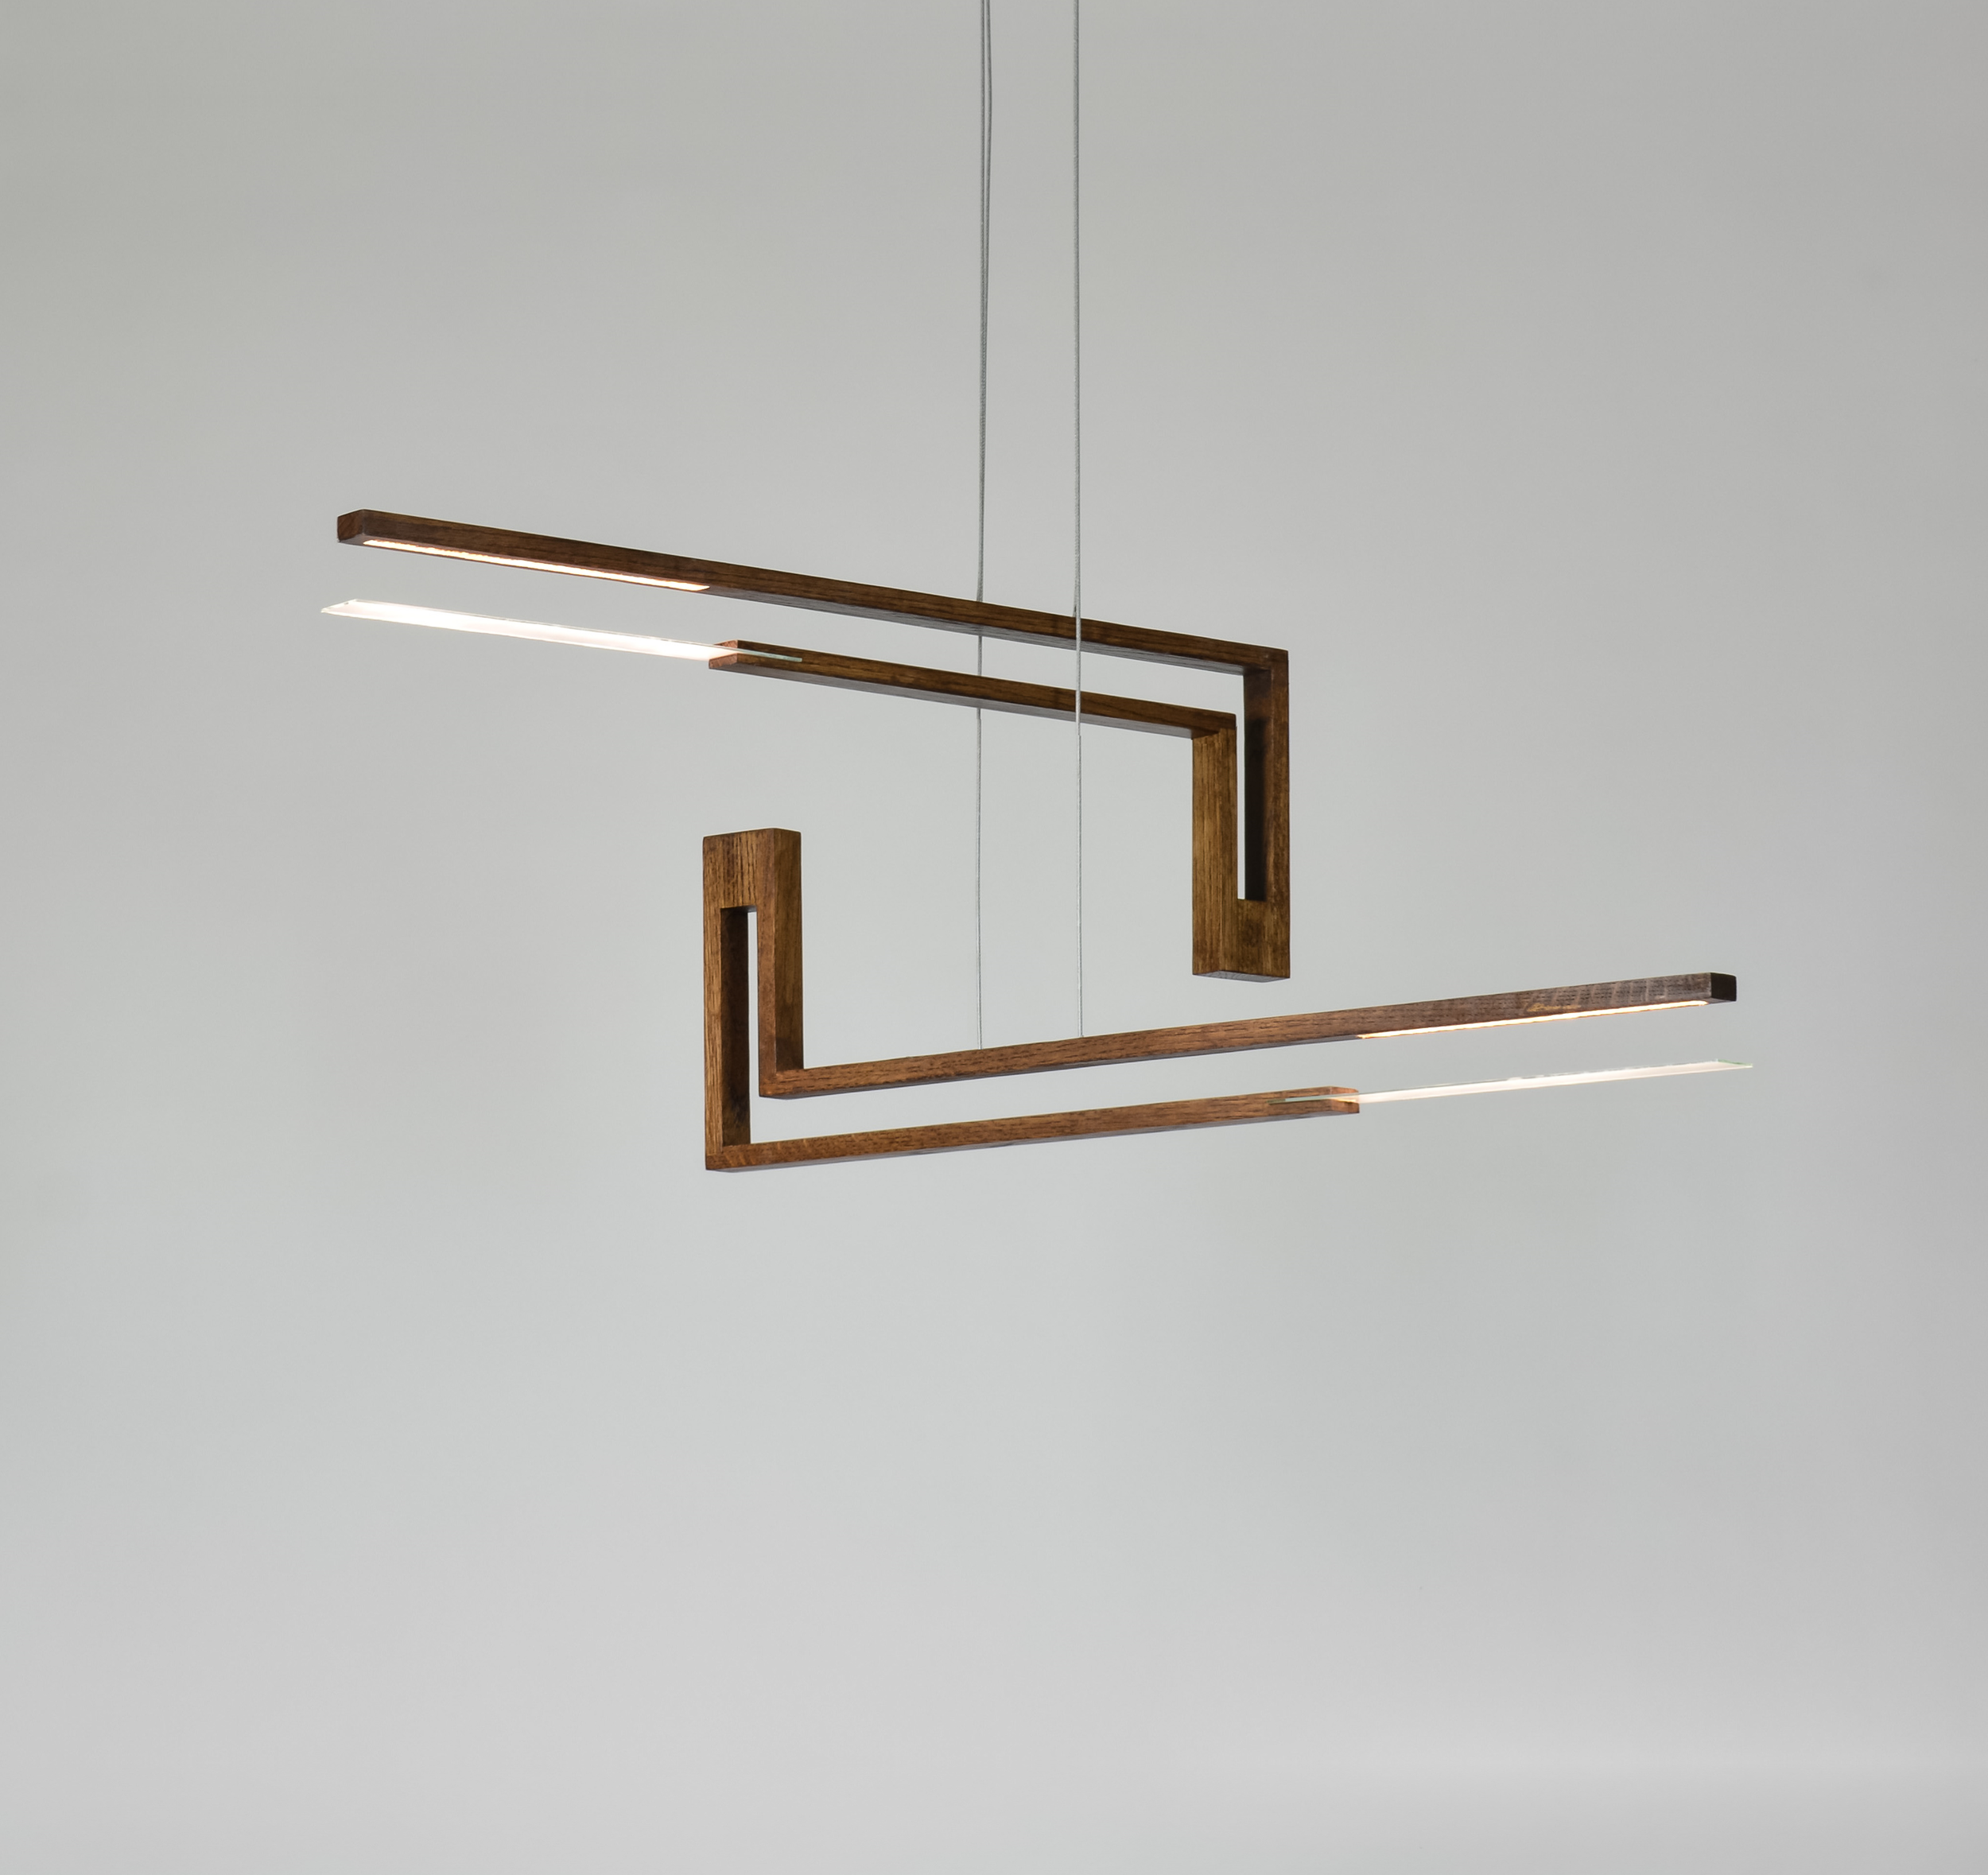 OVUUD - Offset Lamp (Pic 3).png